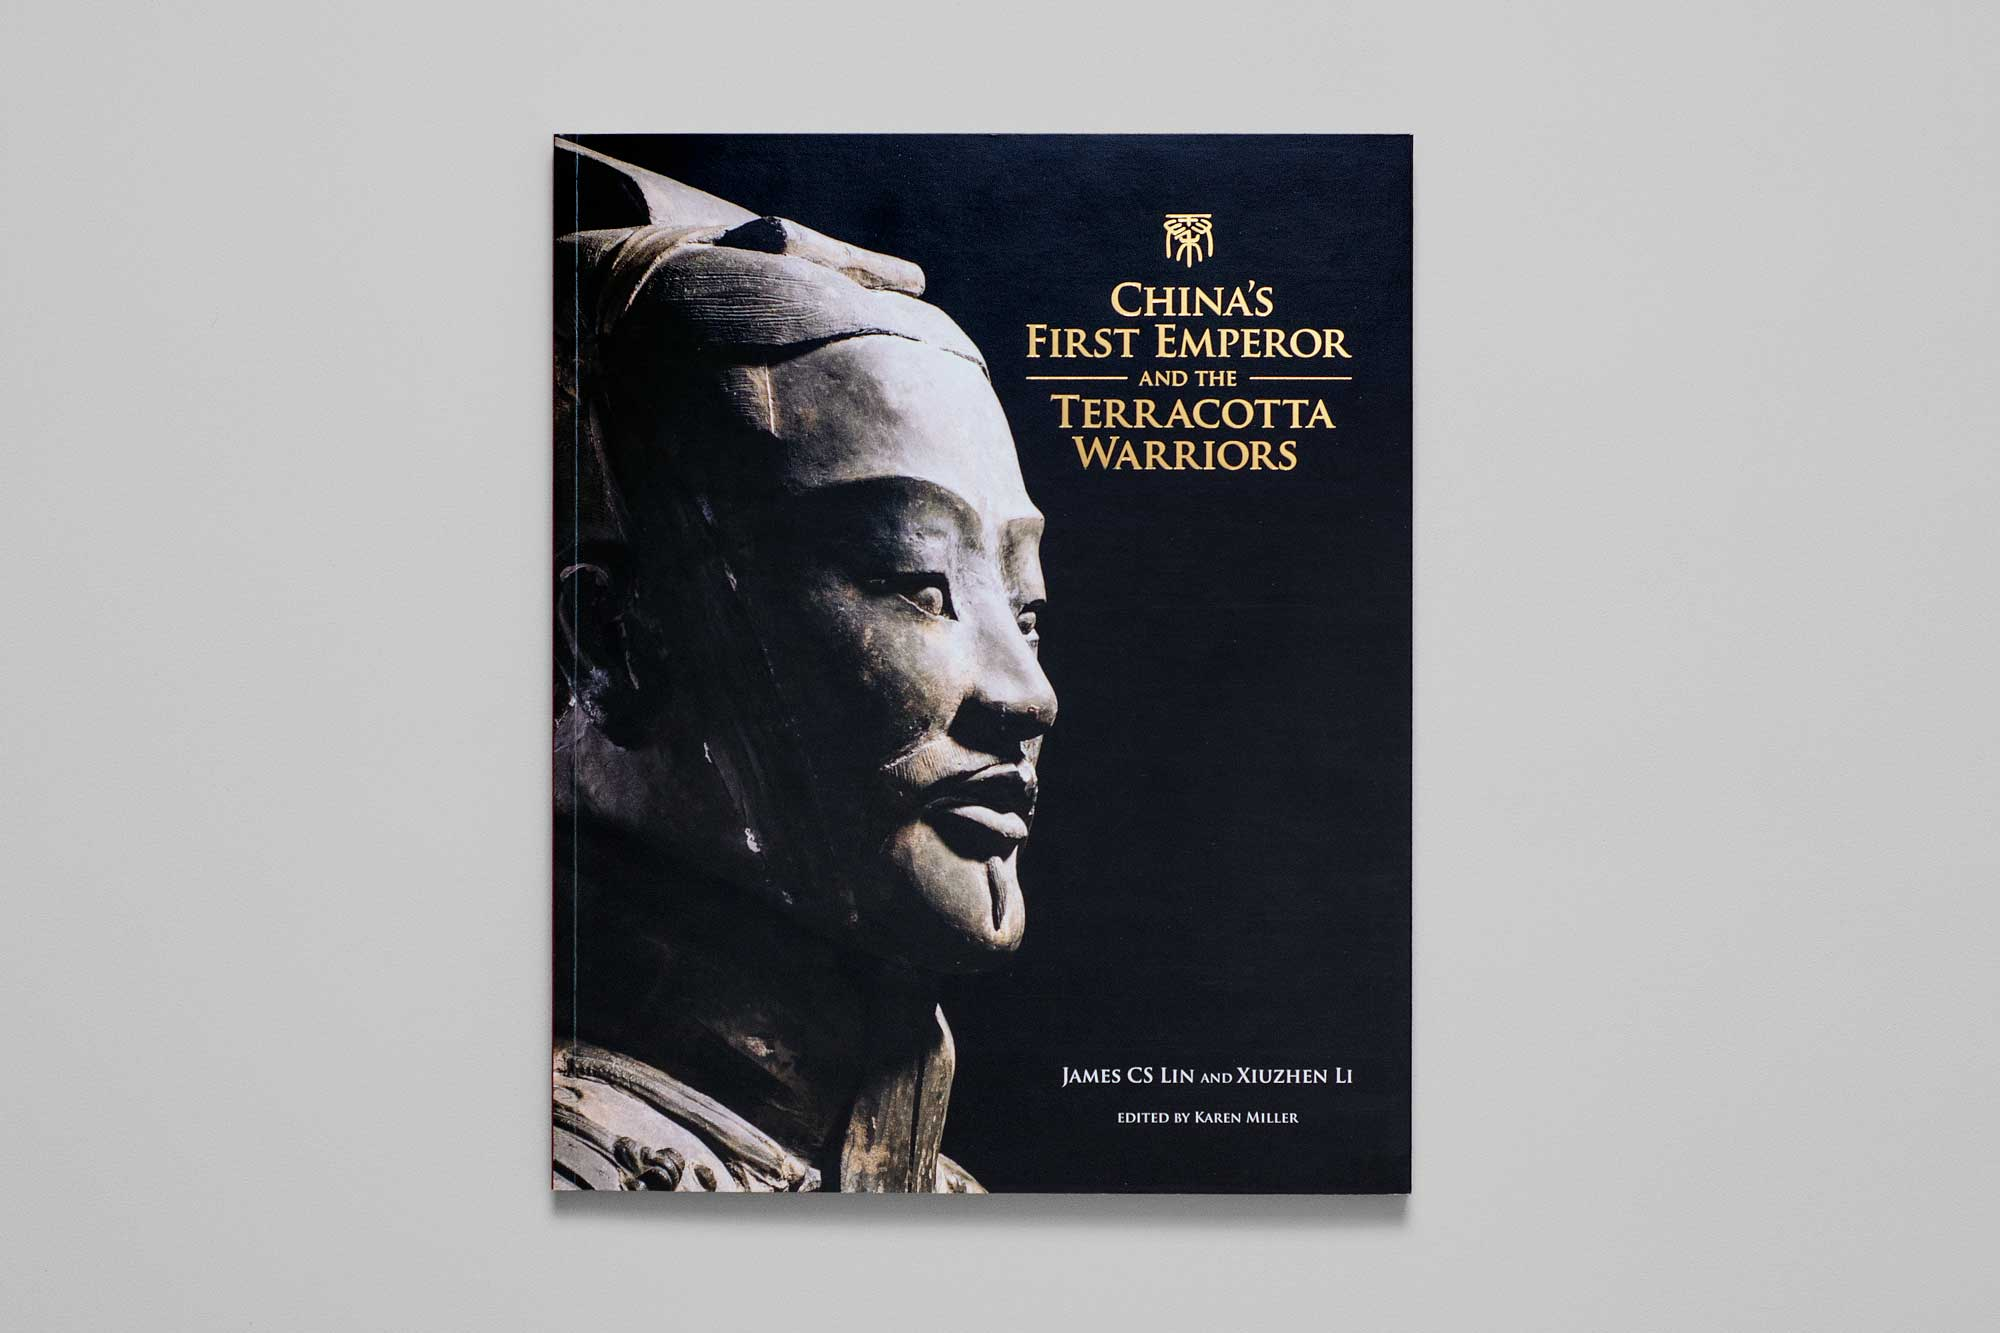 China's First Emperor and the Terracotta Warriors